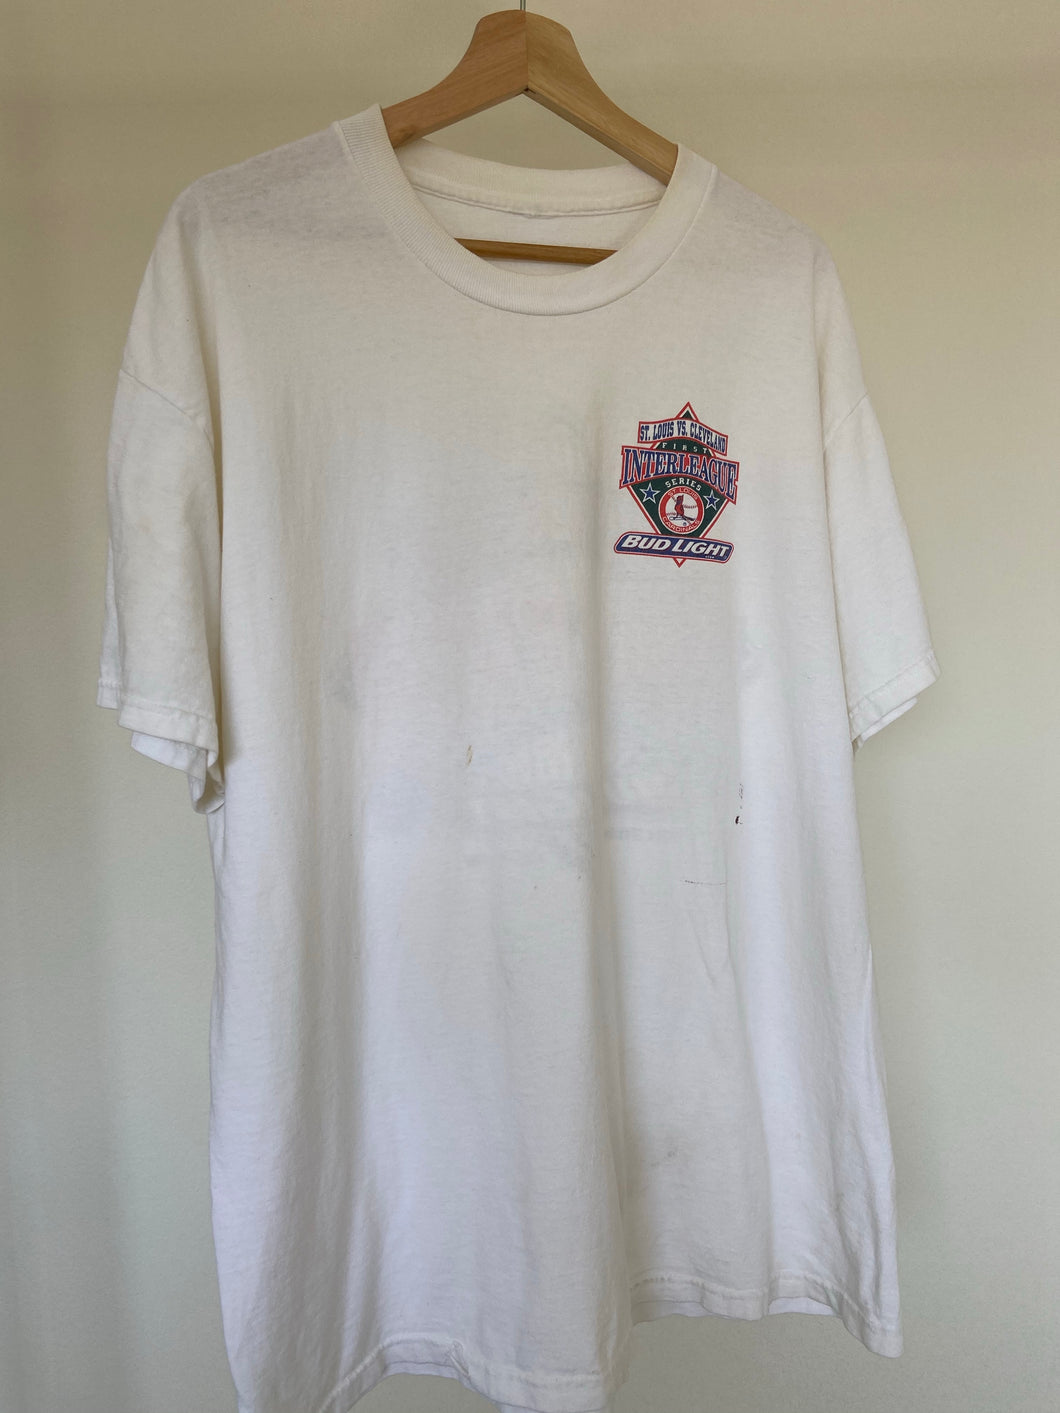 Vintage Interleague Series Tee